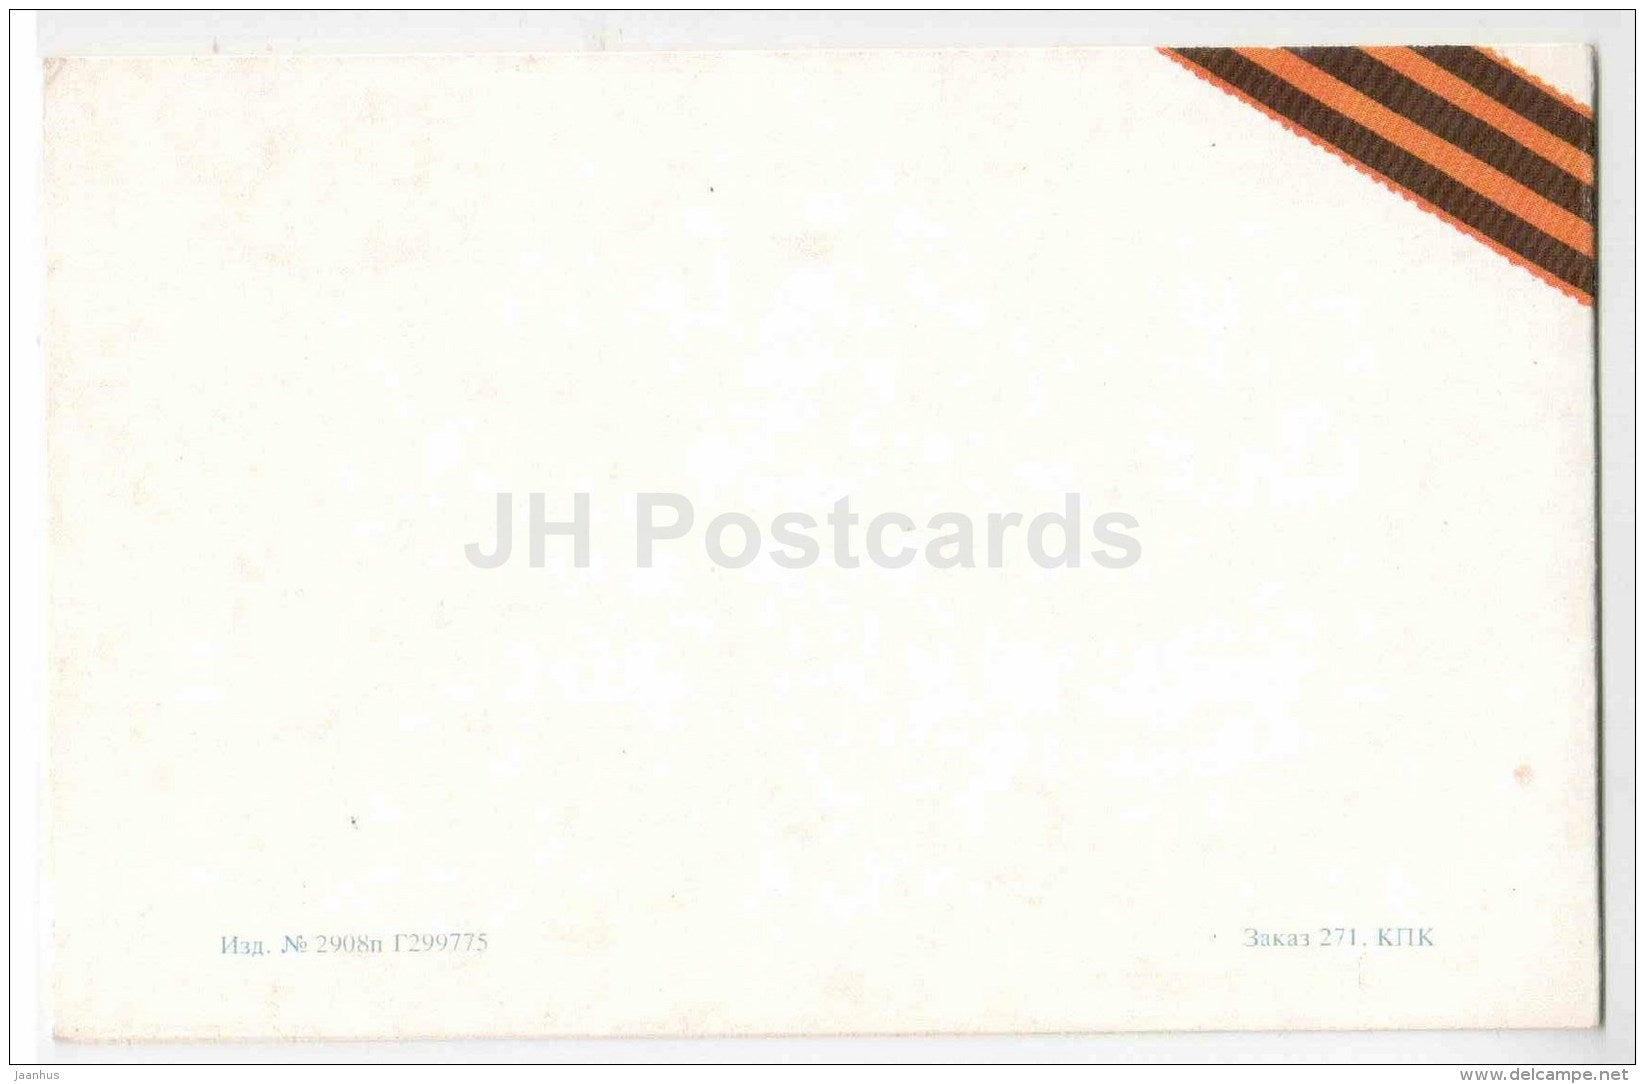 Victory Day anniversary - Order of Great Patriotic War - sent to retired Soviet Major - 1975 - Russia USSR - used - JH Postcards